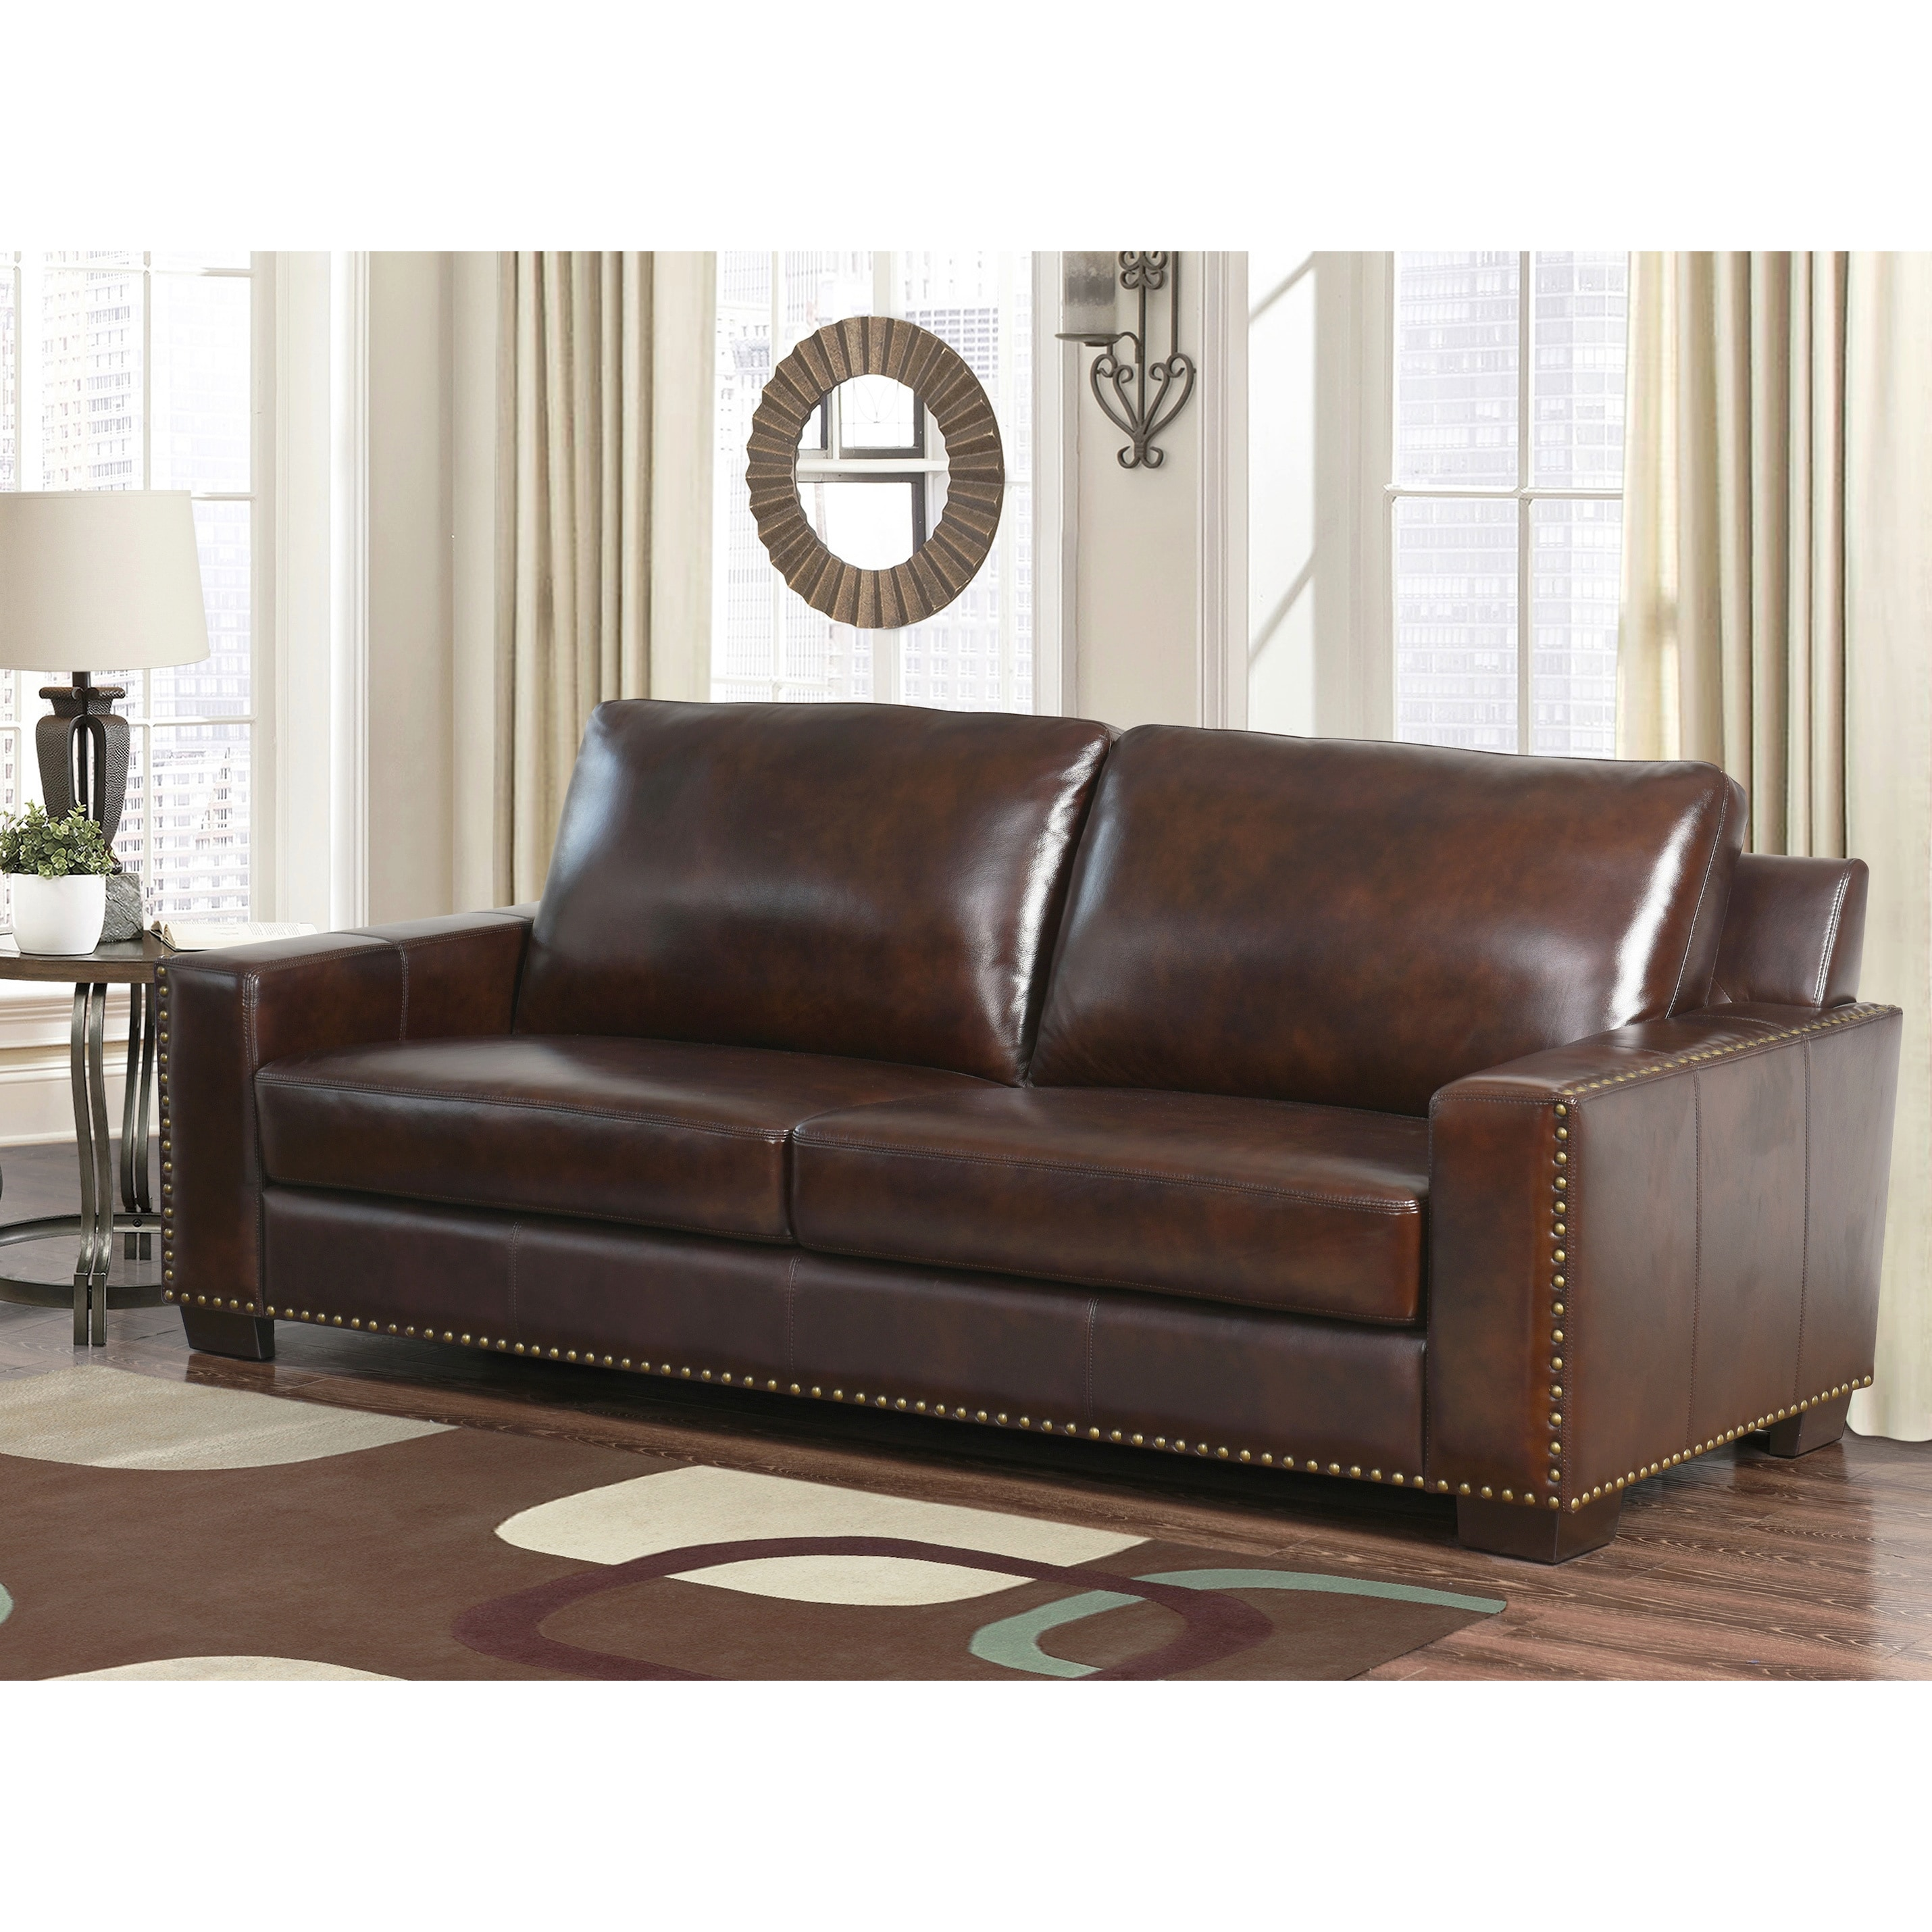 Abbyson Barrington Top Grain Leather 3 Piece Living Room Set On Free Shipping Today Com 8594534